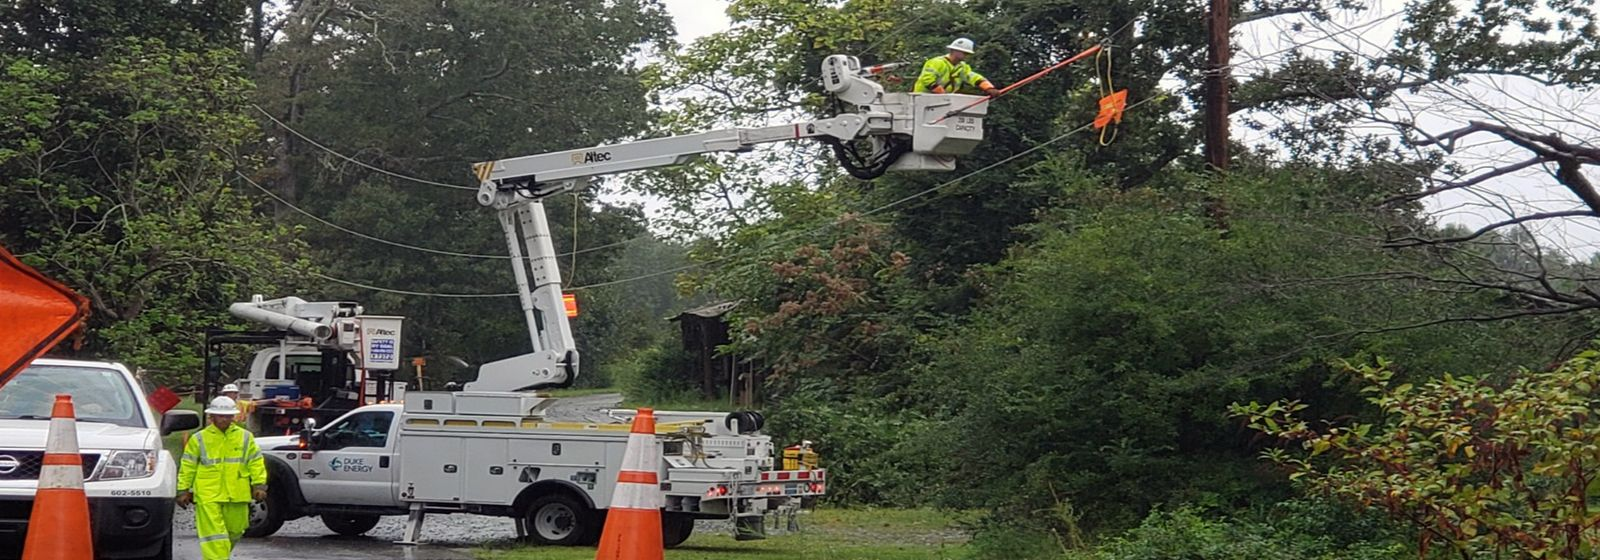 Thousands work to restore power after Hurricane Florence